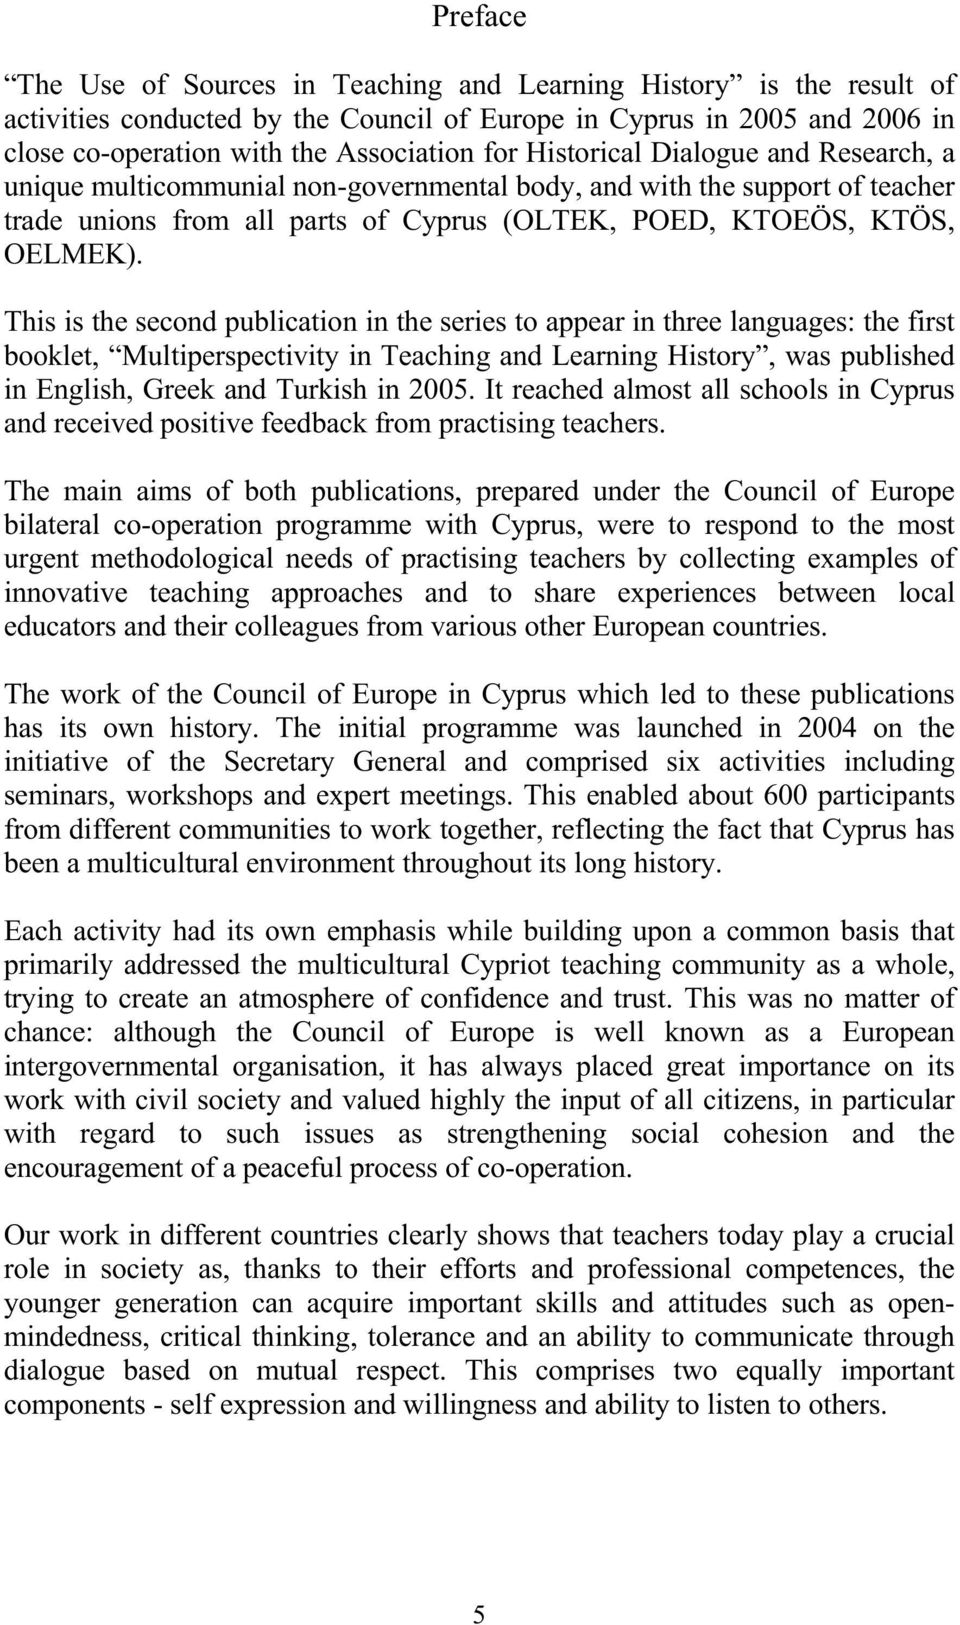 This is the second publication in the series to appear in three languages: the first booklet, Multiperspectivity in Teaching and Learning History, was published in English, Greek and Turkish in 2005.